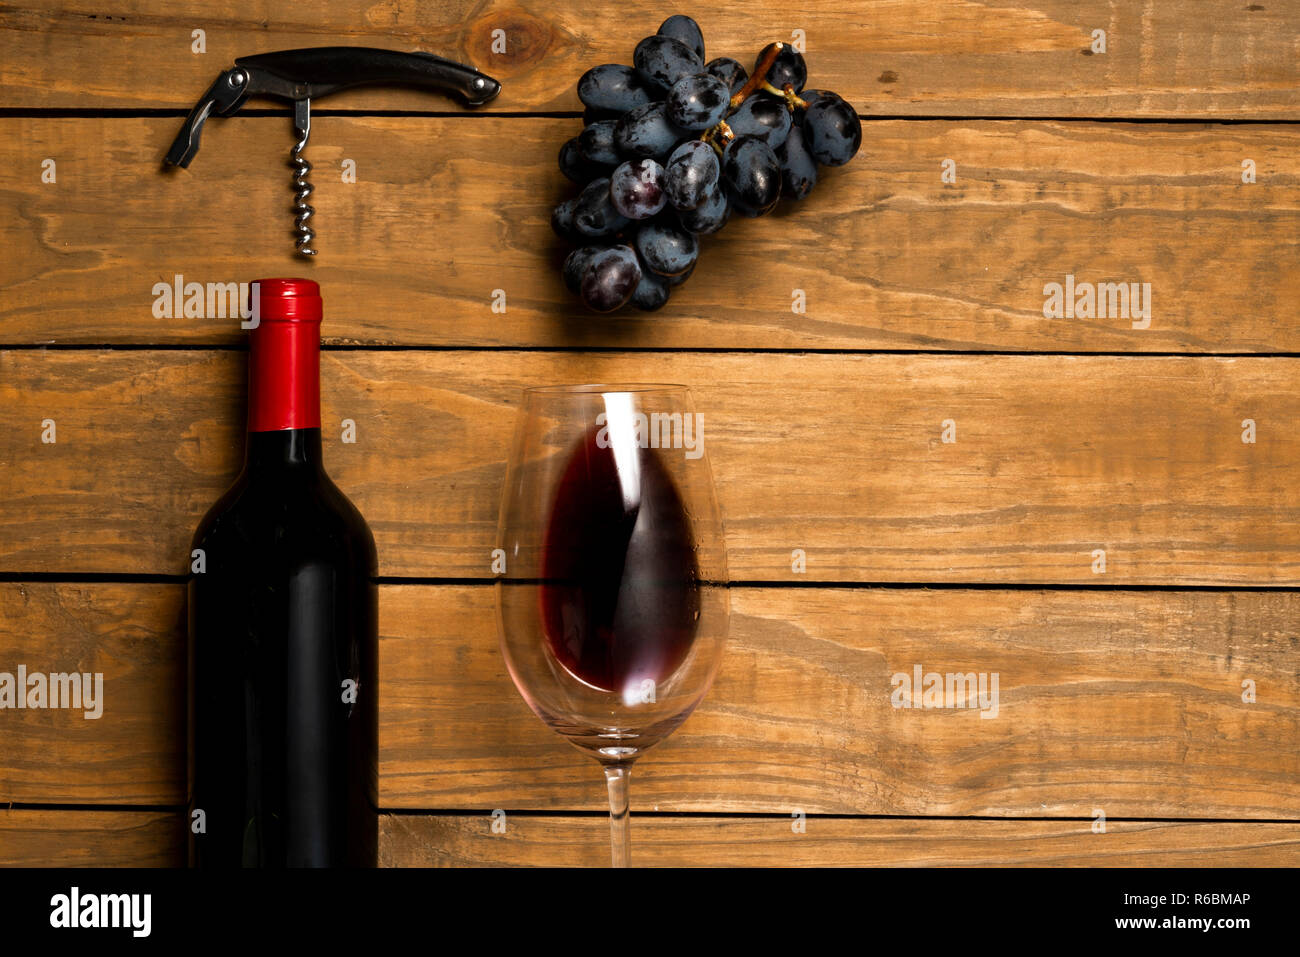 dae54d72d9e0d9 Glasses of wine bottle corks and opener on wooden background. Top view with  copy space.